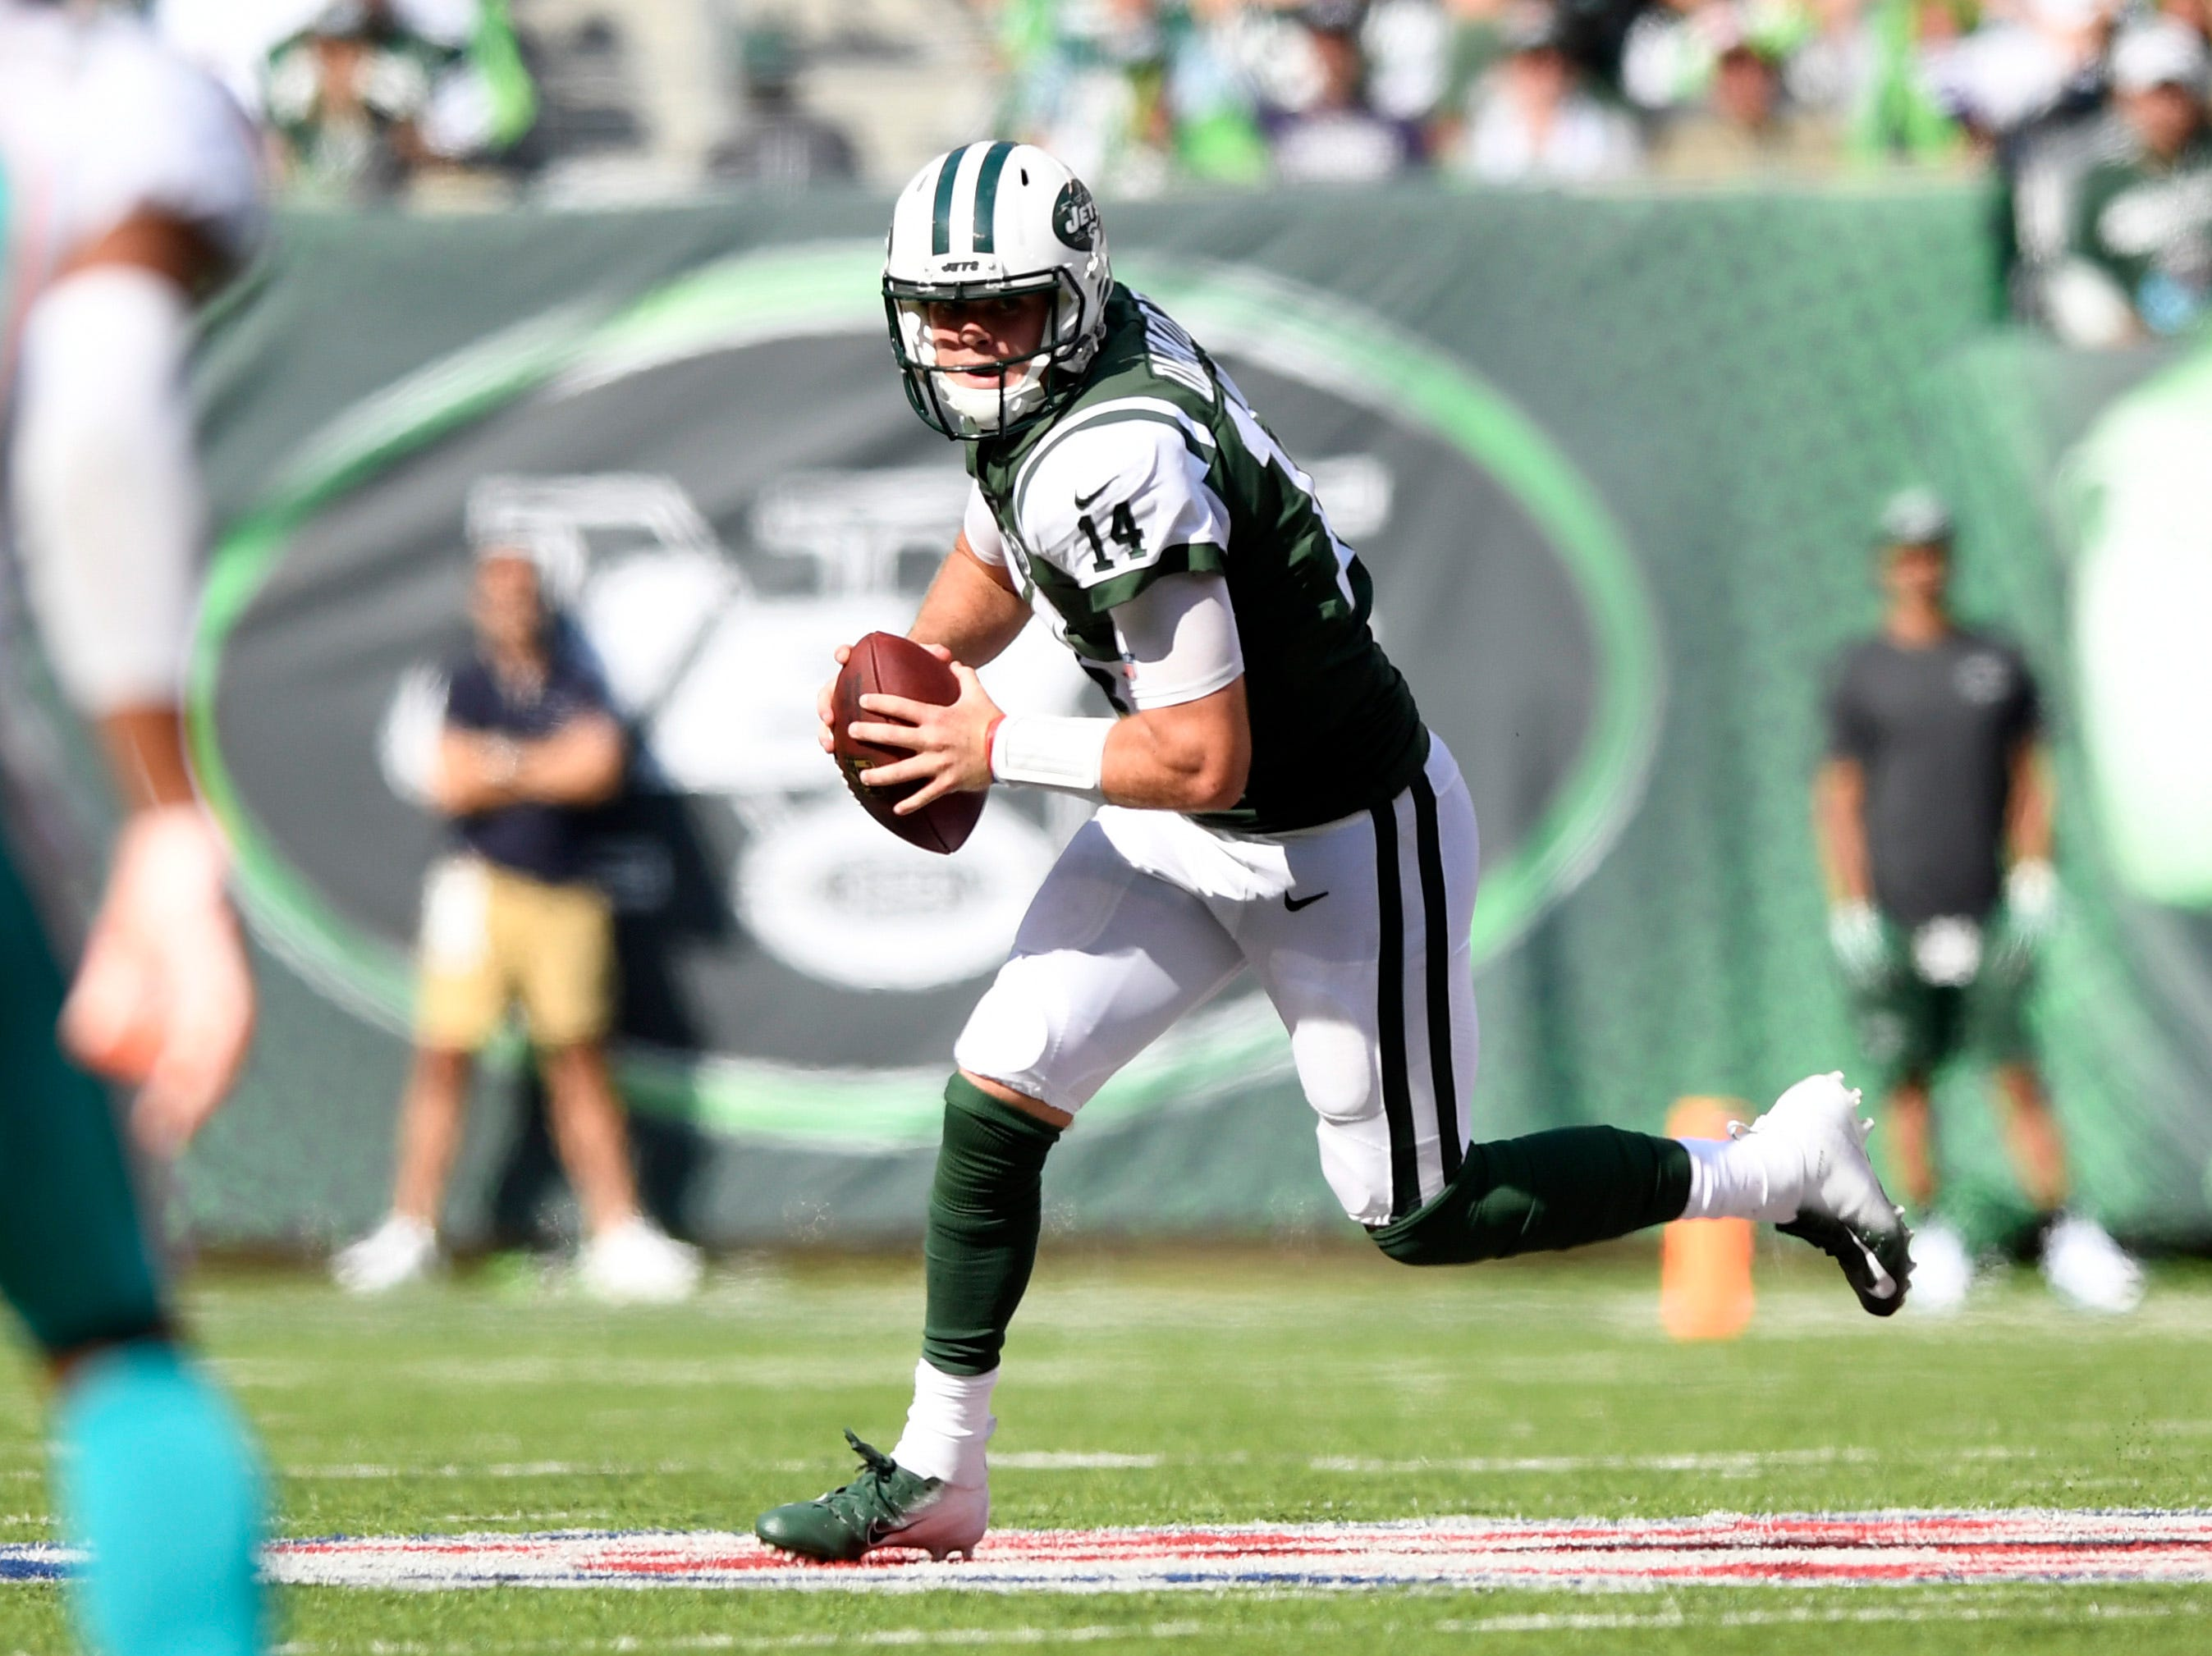 New York Jets quarterback Sam Darnold (14) looks for an open receiver against the Miami Dolphins in Week 2 at MetLife Stadium in East Rutherford, NJ on Sunday, September 16, 2018.